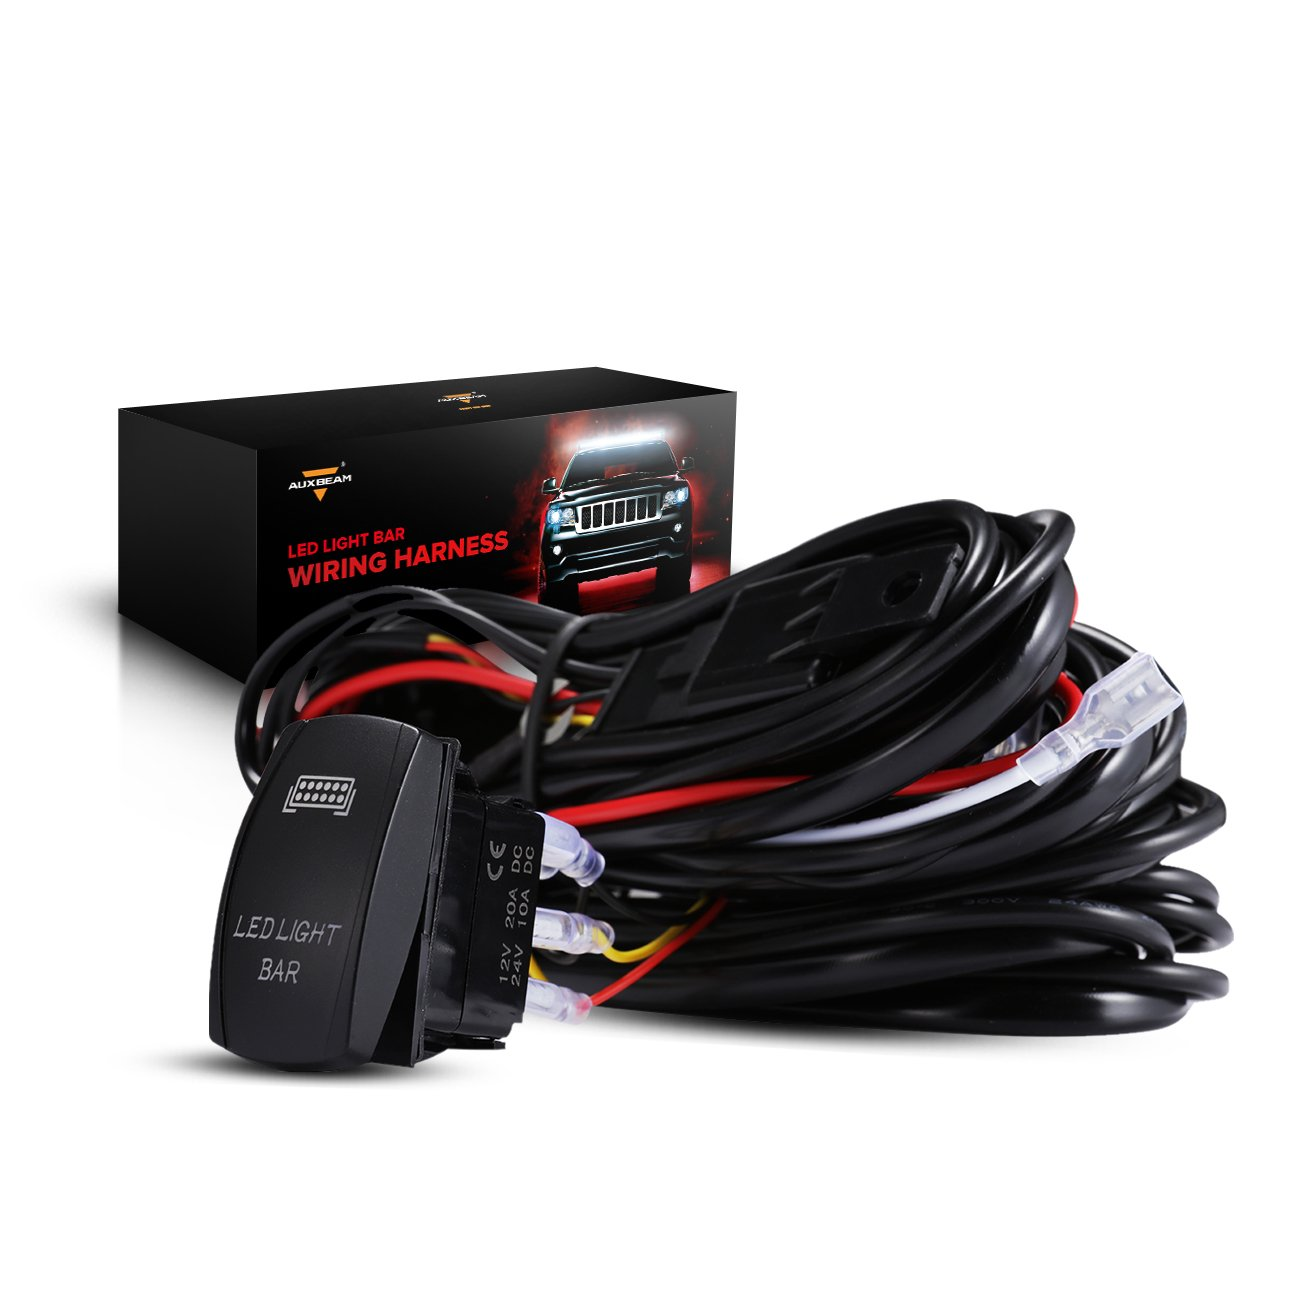 Auxbeam Led Light Bar Rocker Switch With 3pcs Switching Lines Wiring A Loom Harness Kit Fuse